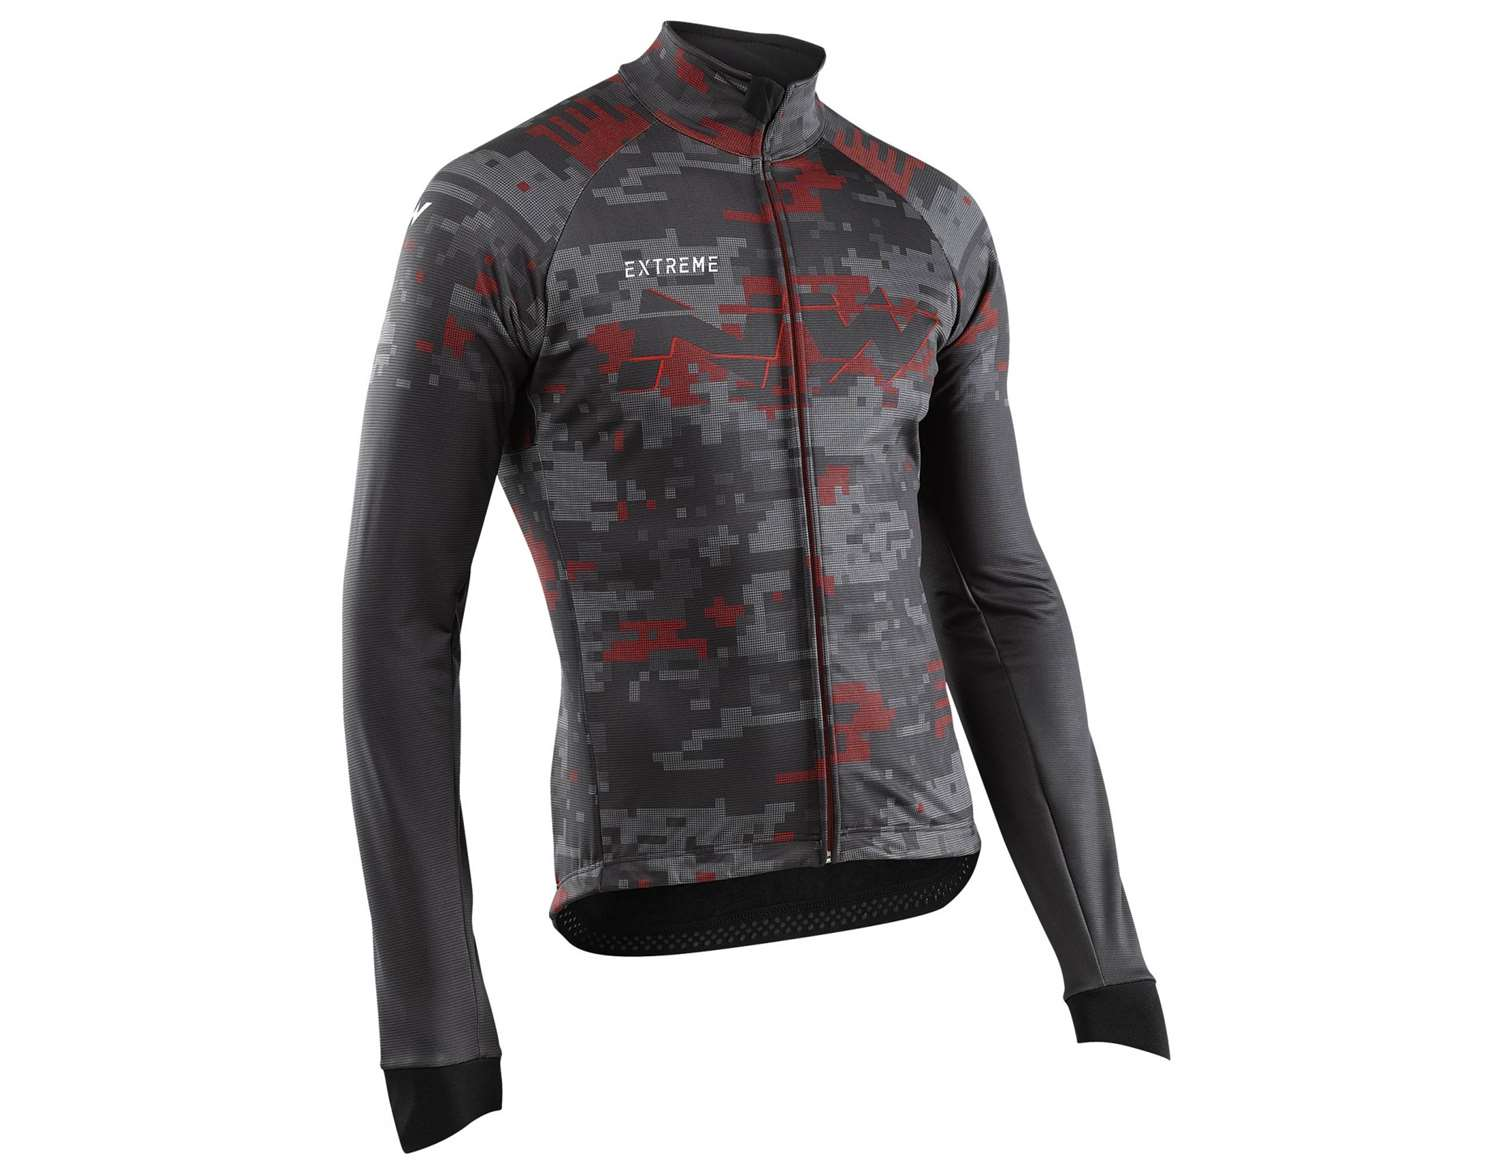 EXTREME 2 JACKET TOTAL PROTECTION BLACK RED